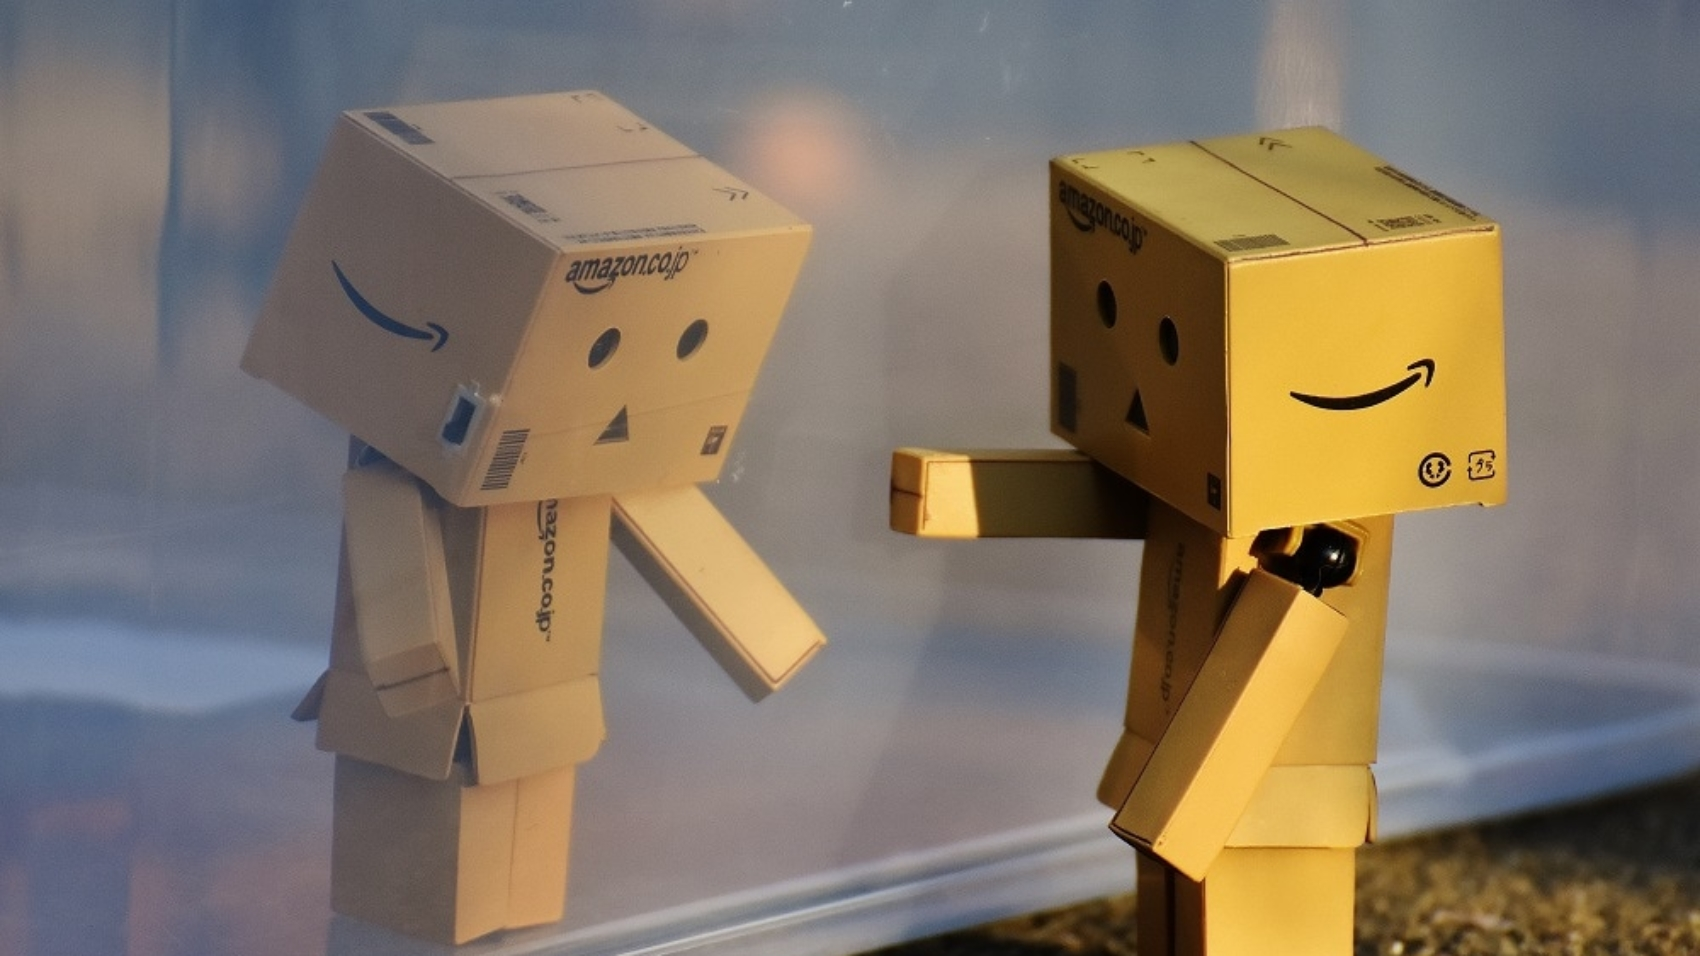 Canva - Danbo Figures Separated by Glass